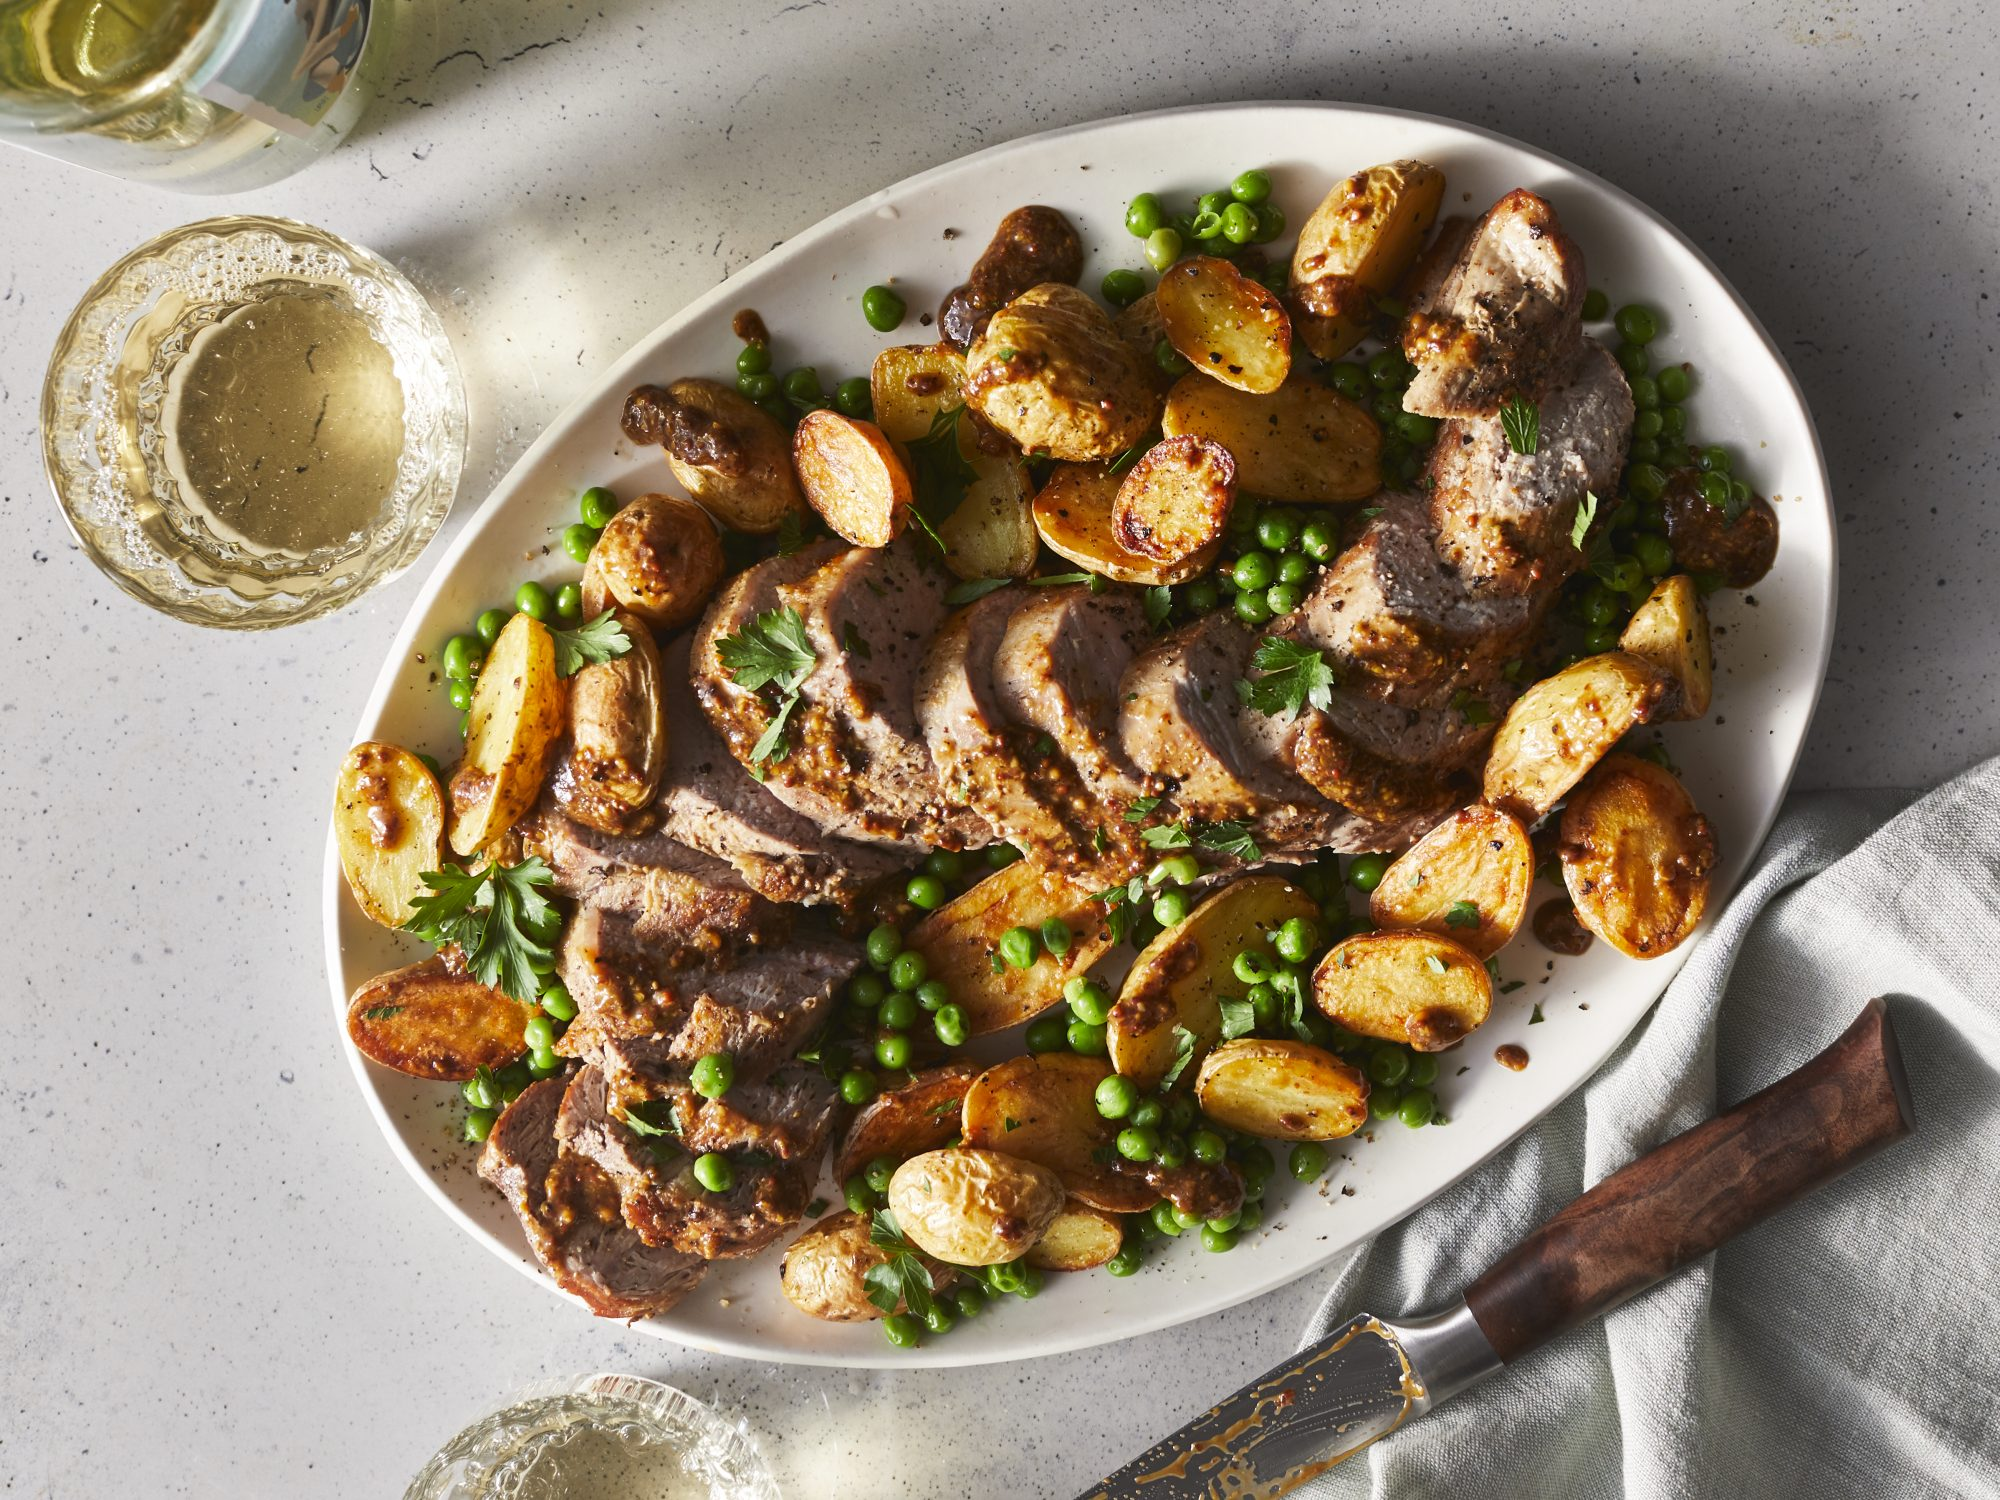 Roasted Pork Tenderloin With Golden Potatoes And Herb Dressing